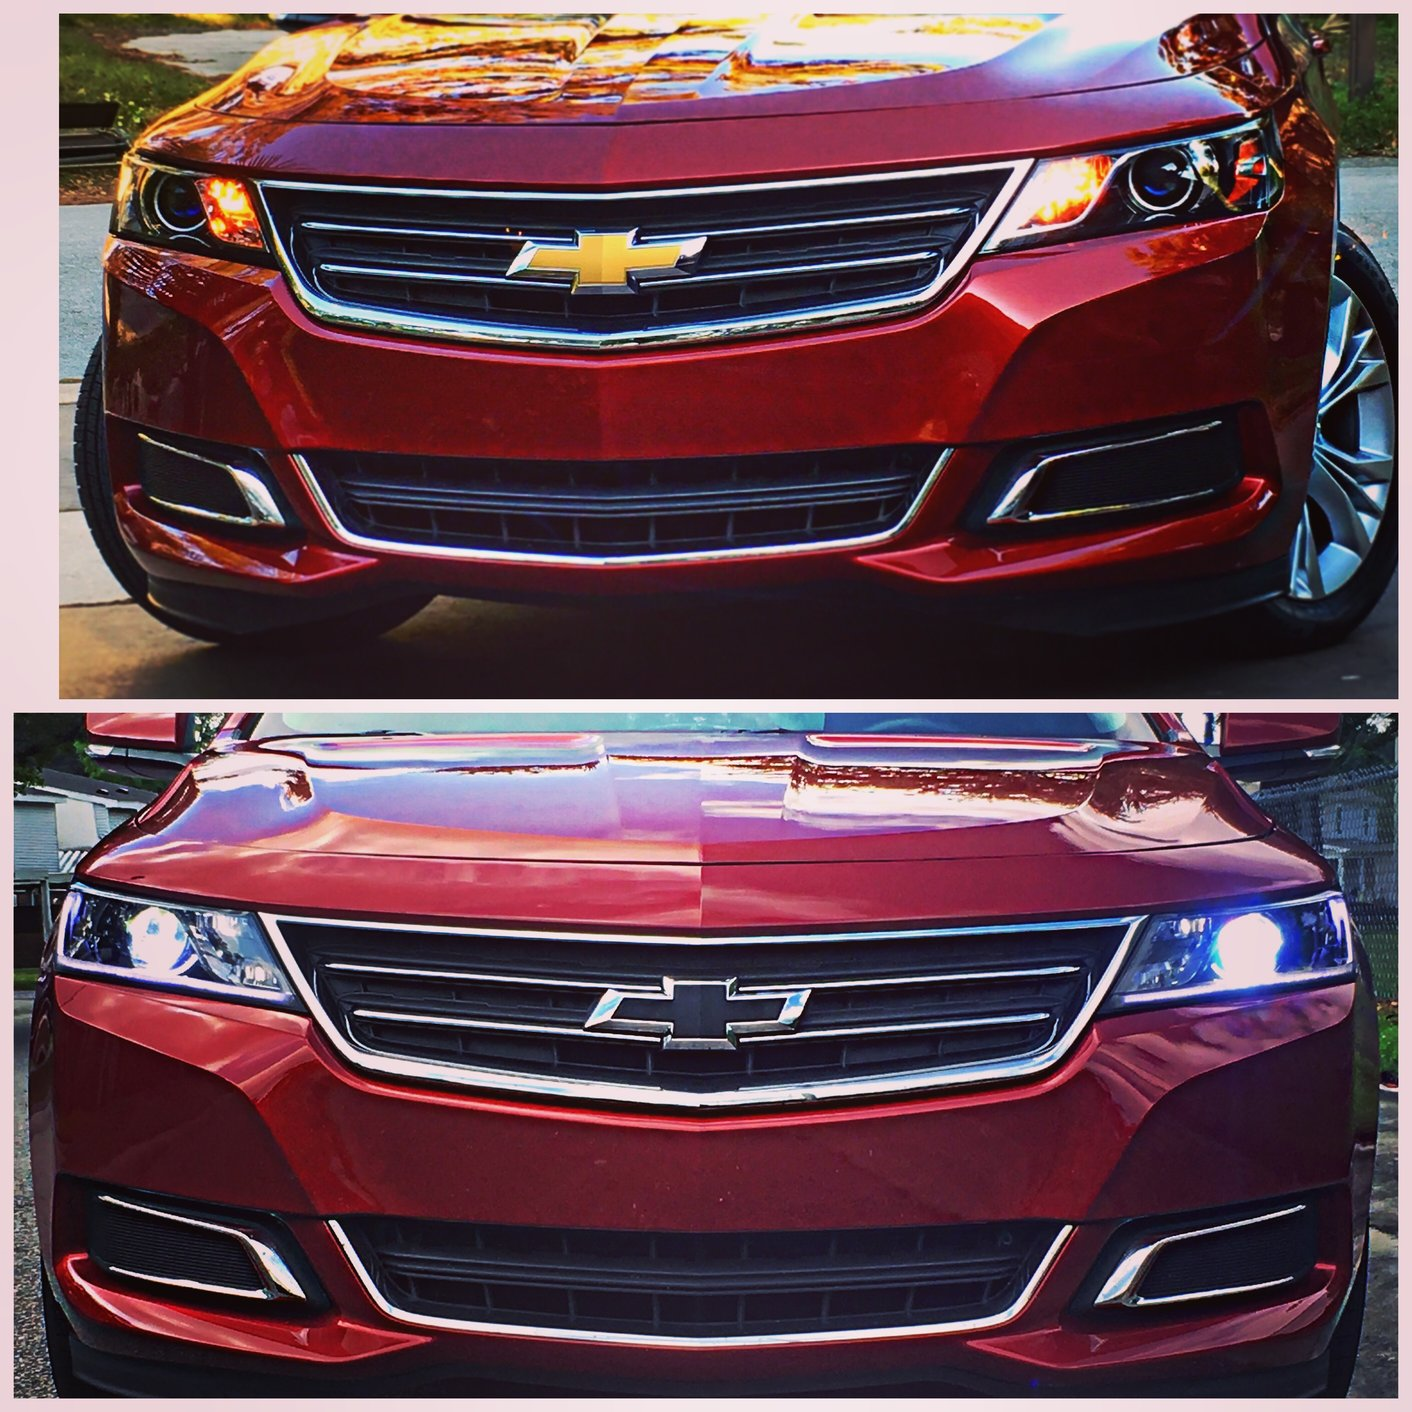 Wiring Up Daytime Running Lights Page 3 Chevy Impala Forums ... on